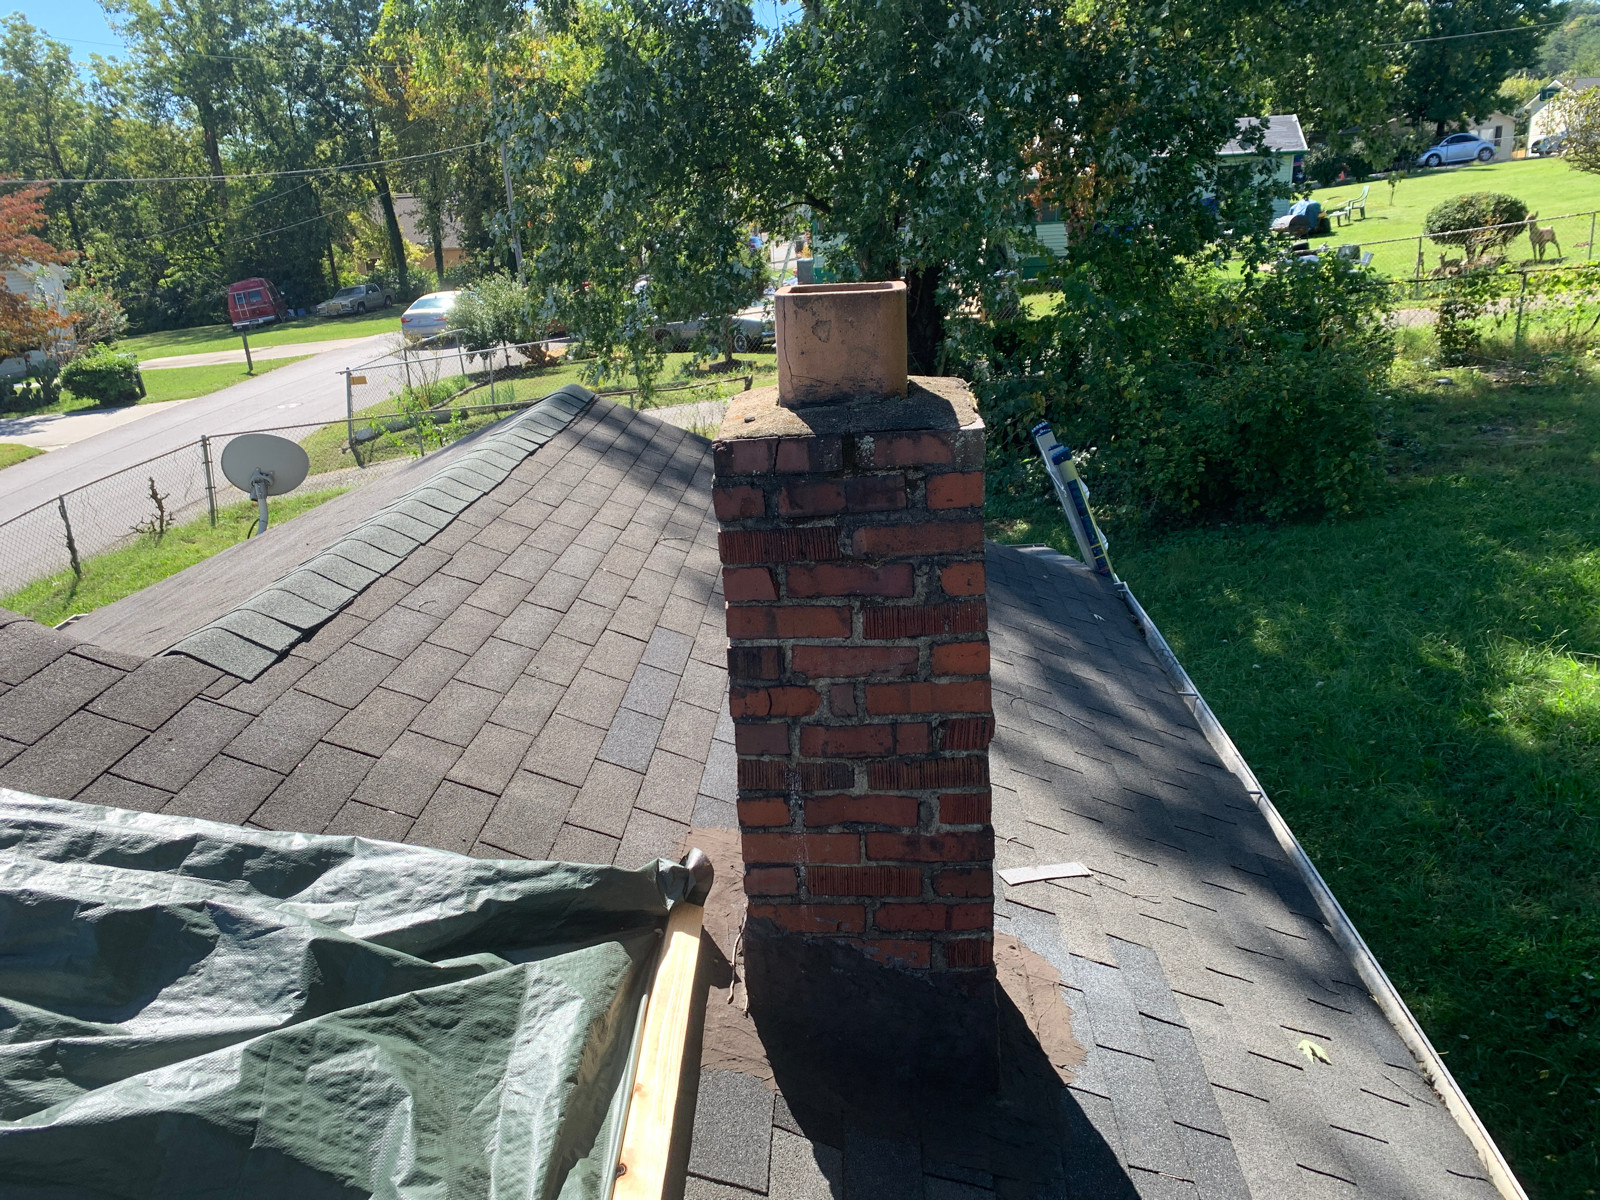 This is a view of the chimney and ridge of the roof.